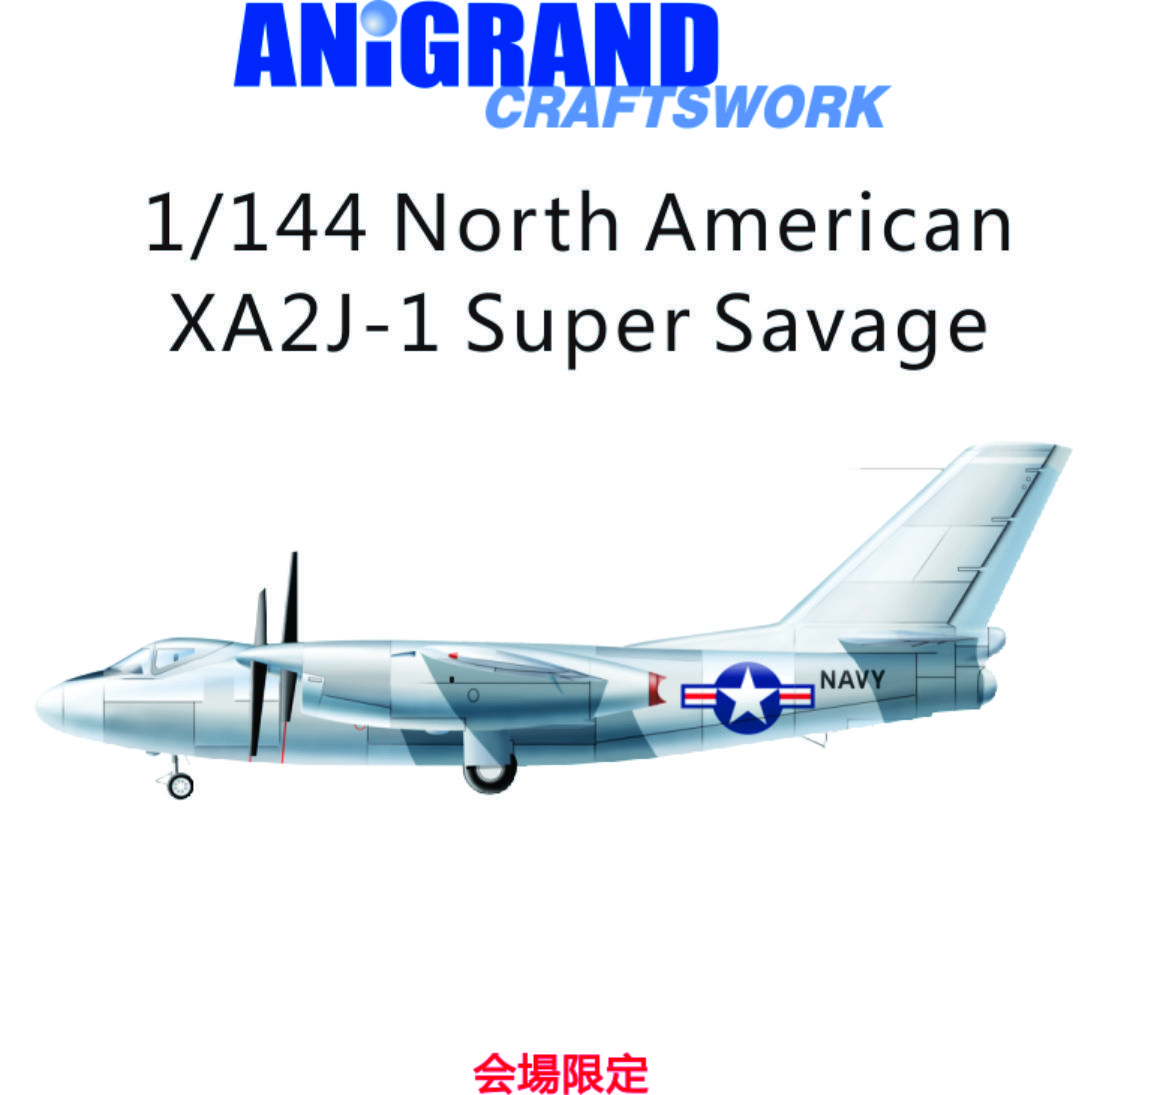 /Anigrand_Catalog/Anigrand/anigrand/dameya/1-144 North American XA2J-1 Super Savage.jpg